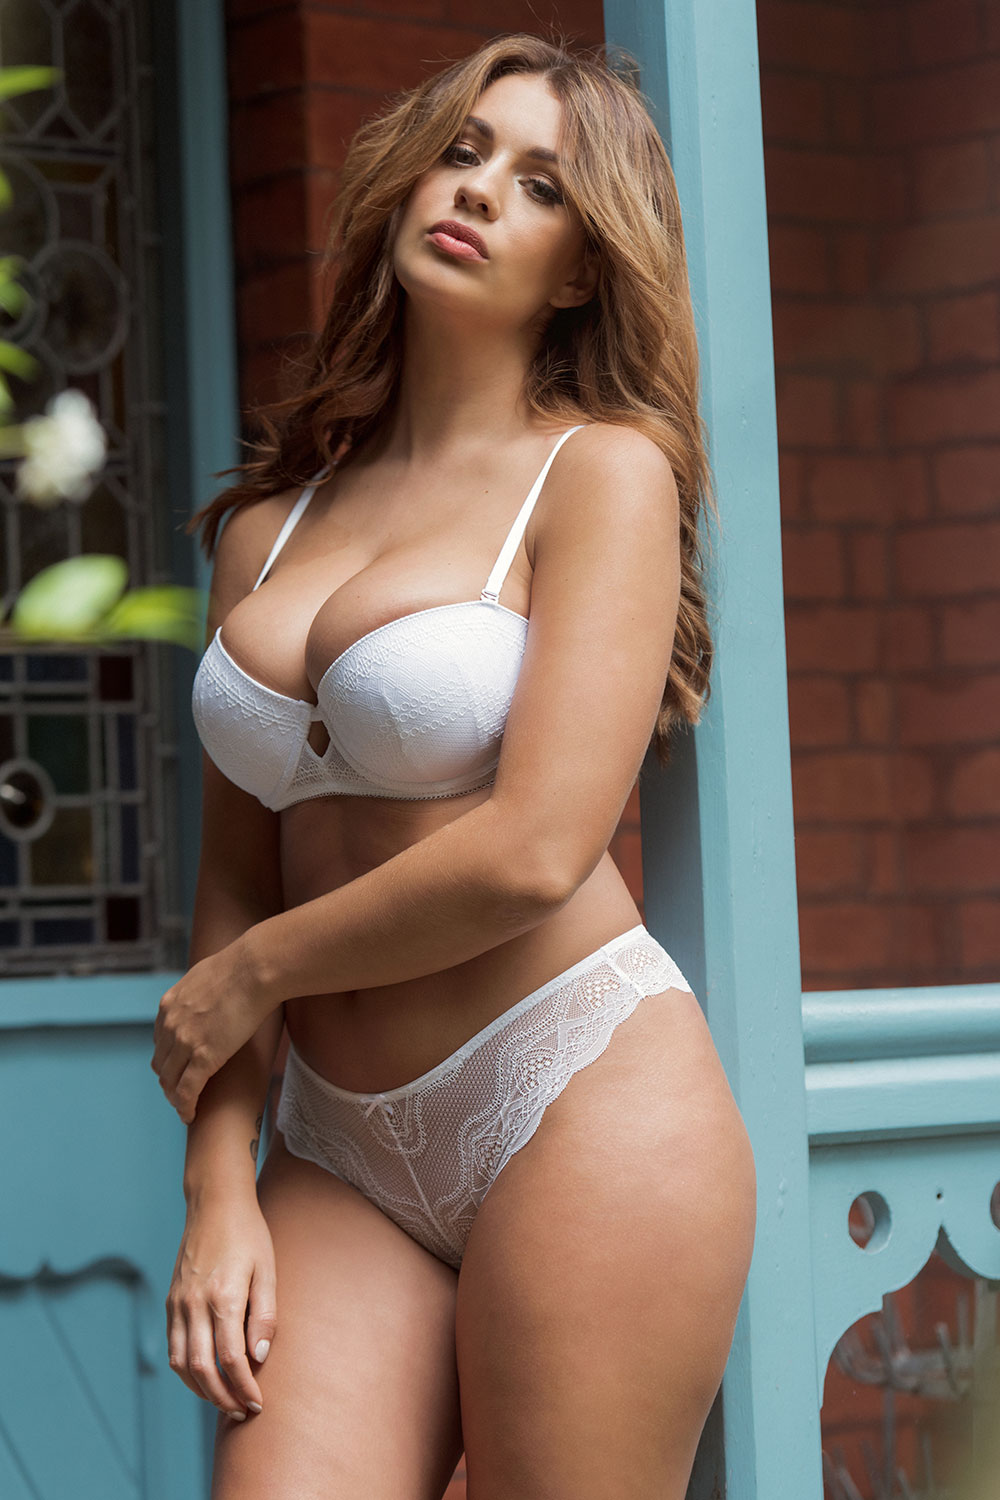 Holly Peers Sexy And Topless 4 Sn26812